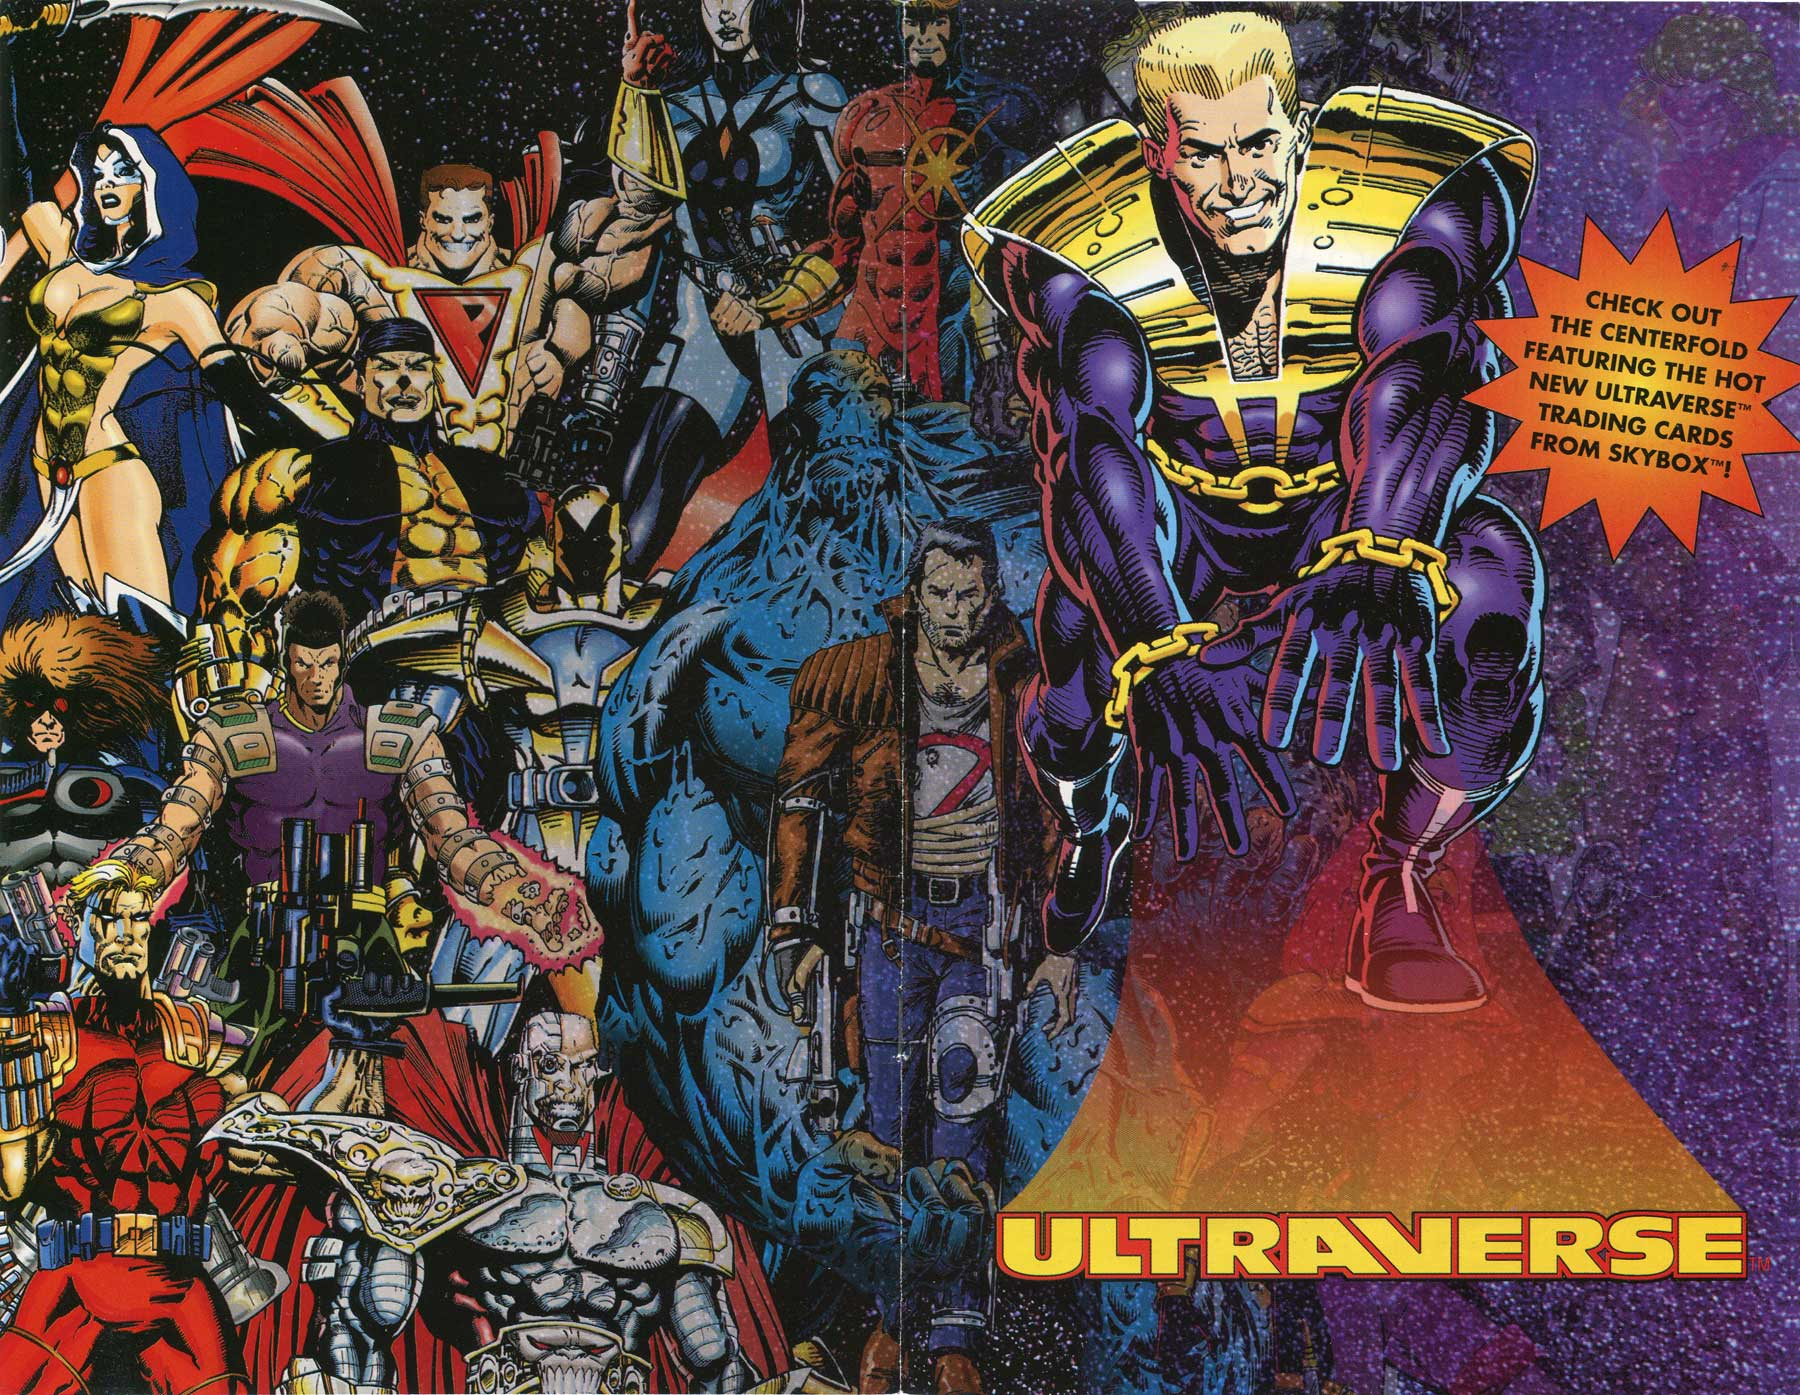 Countdown to Ultraverse